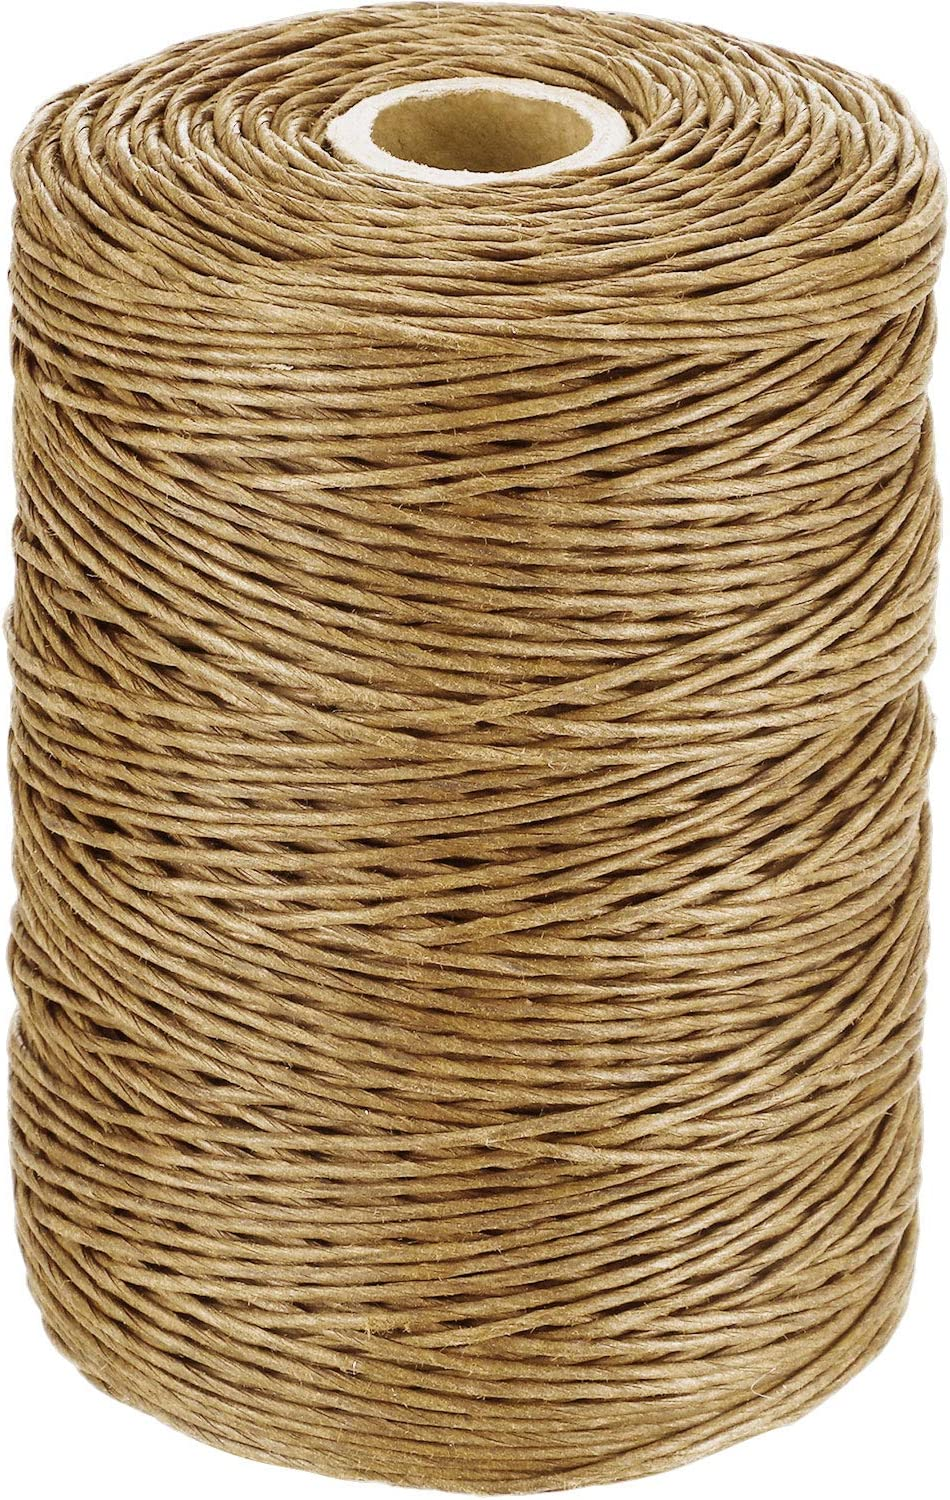 Floral Wire Vine Bind for Popular In stock product Wrapping Fl Rustic